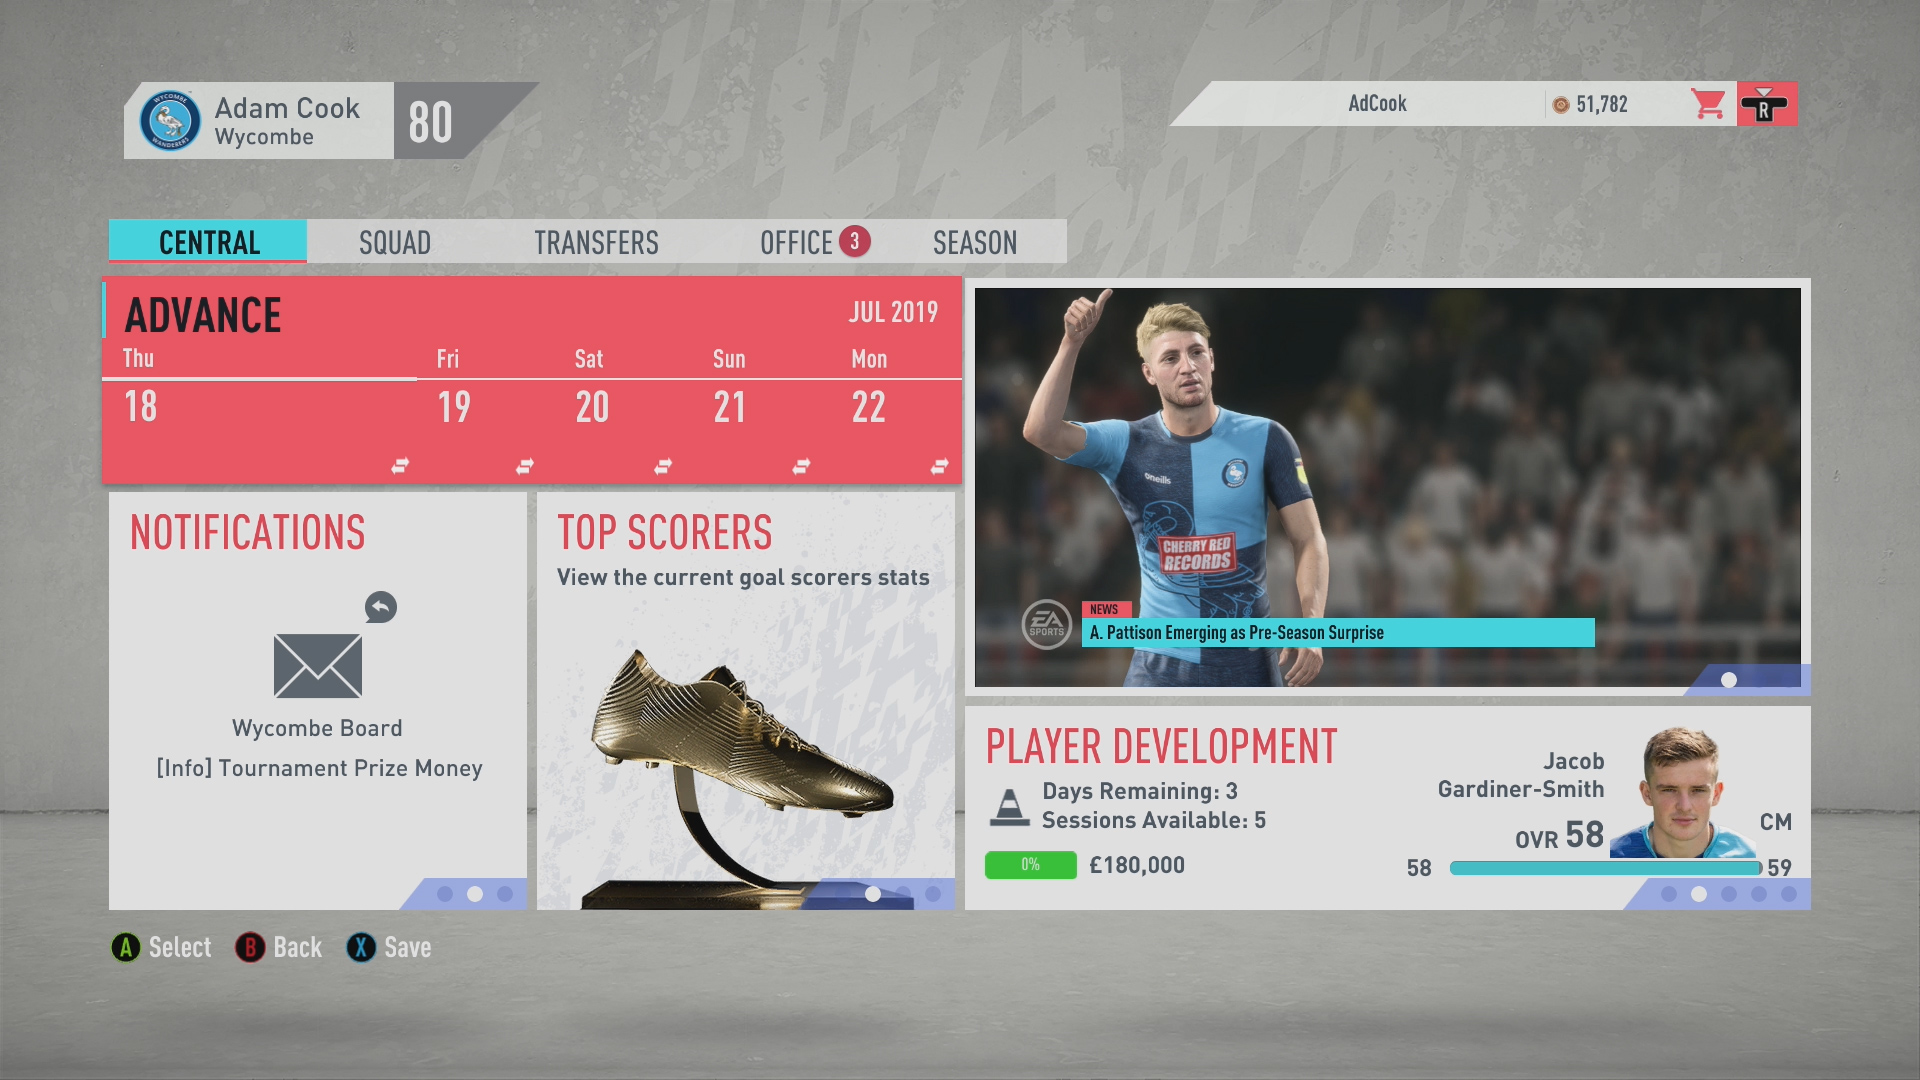 Career Mode remains mostly untouched